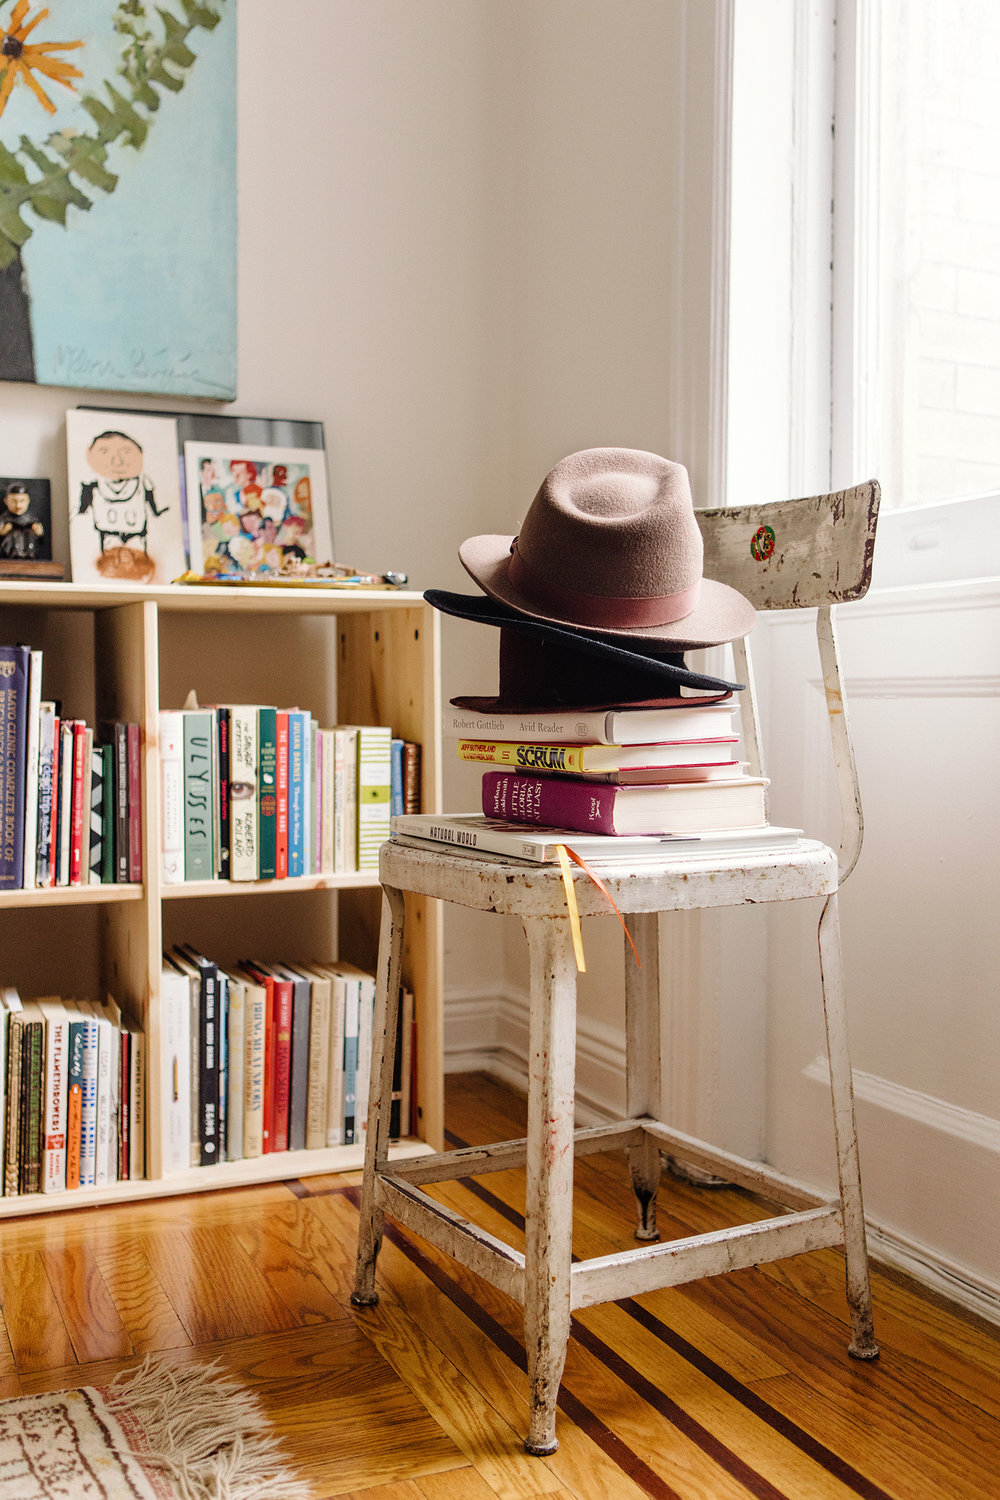 nyc-editorial-interiors-photographer-heather-moore.jpg